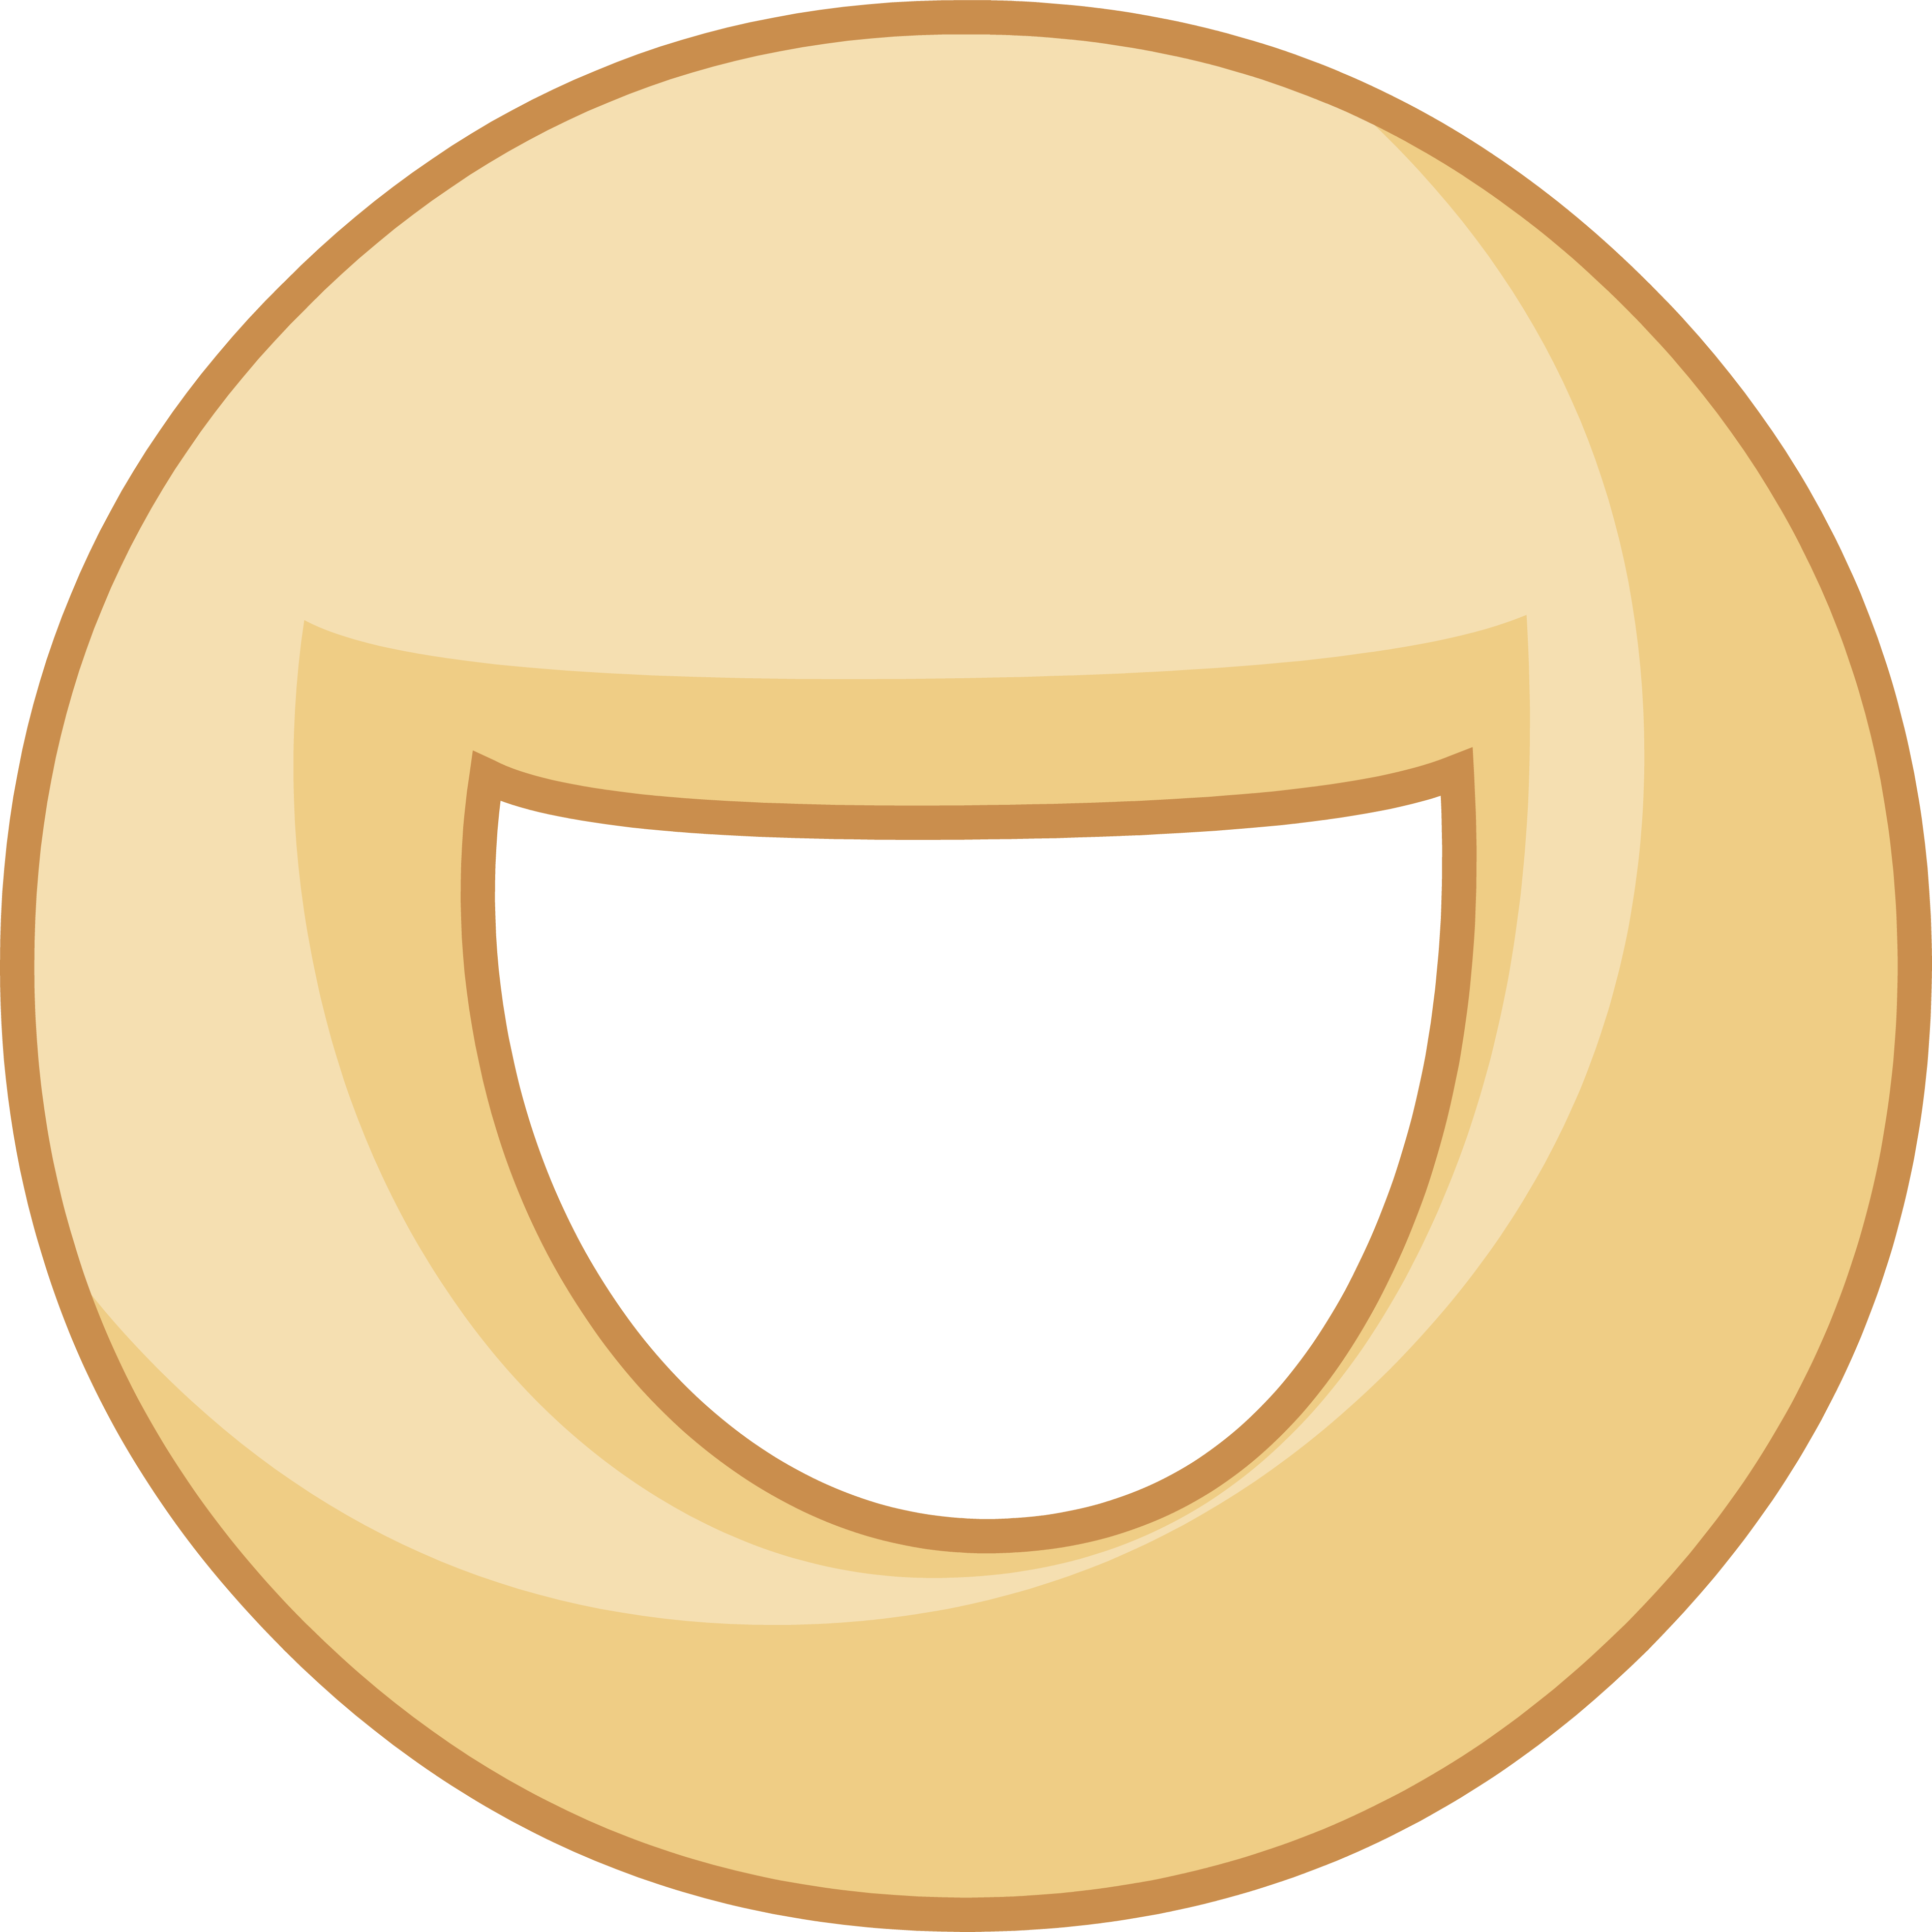 File:Donut C Smile0001.png